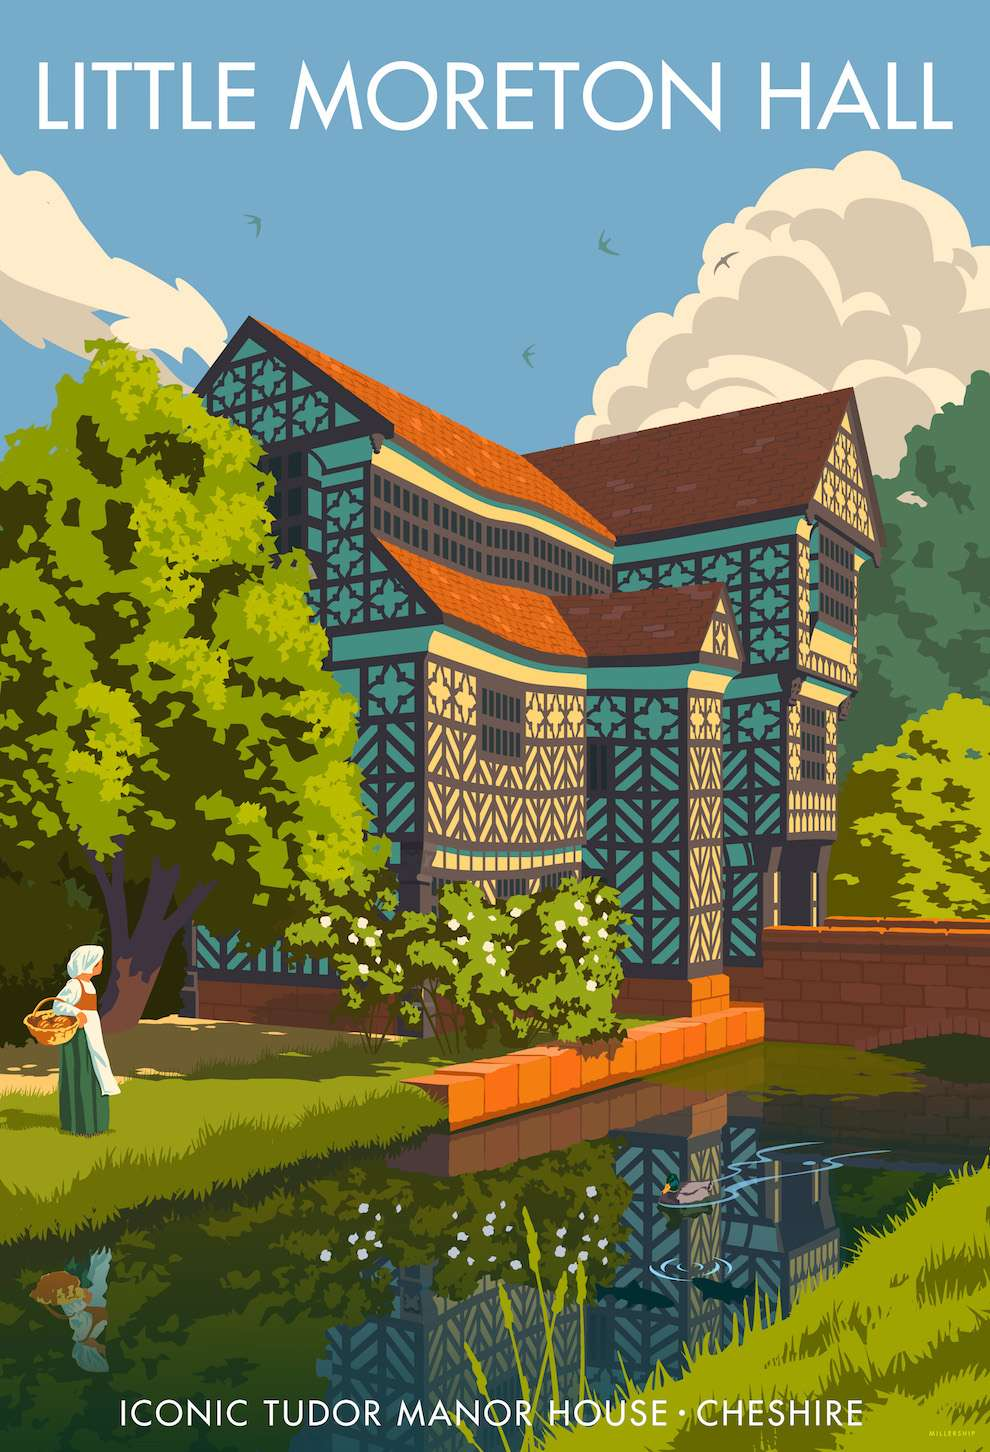 Stephen  Millership, Little Moreton Hall architectural historical poster